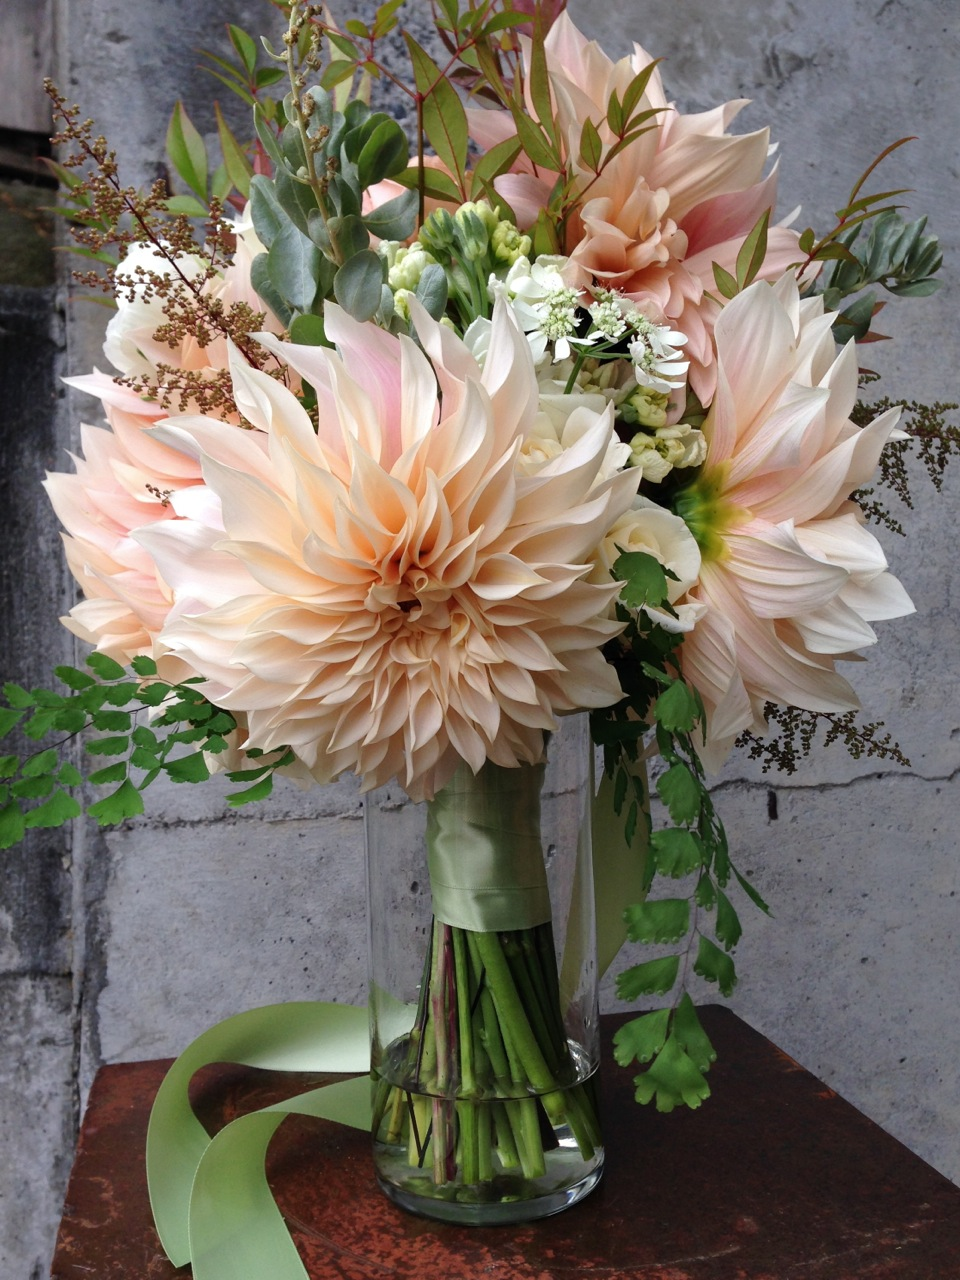 Organic christopher knits page 3 bouquet dahlia cafe au lait peach cream flower floral christopher flowers organic local design izmirmasajfo